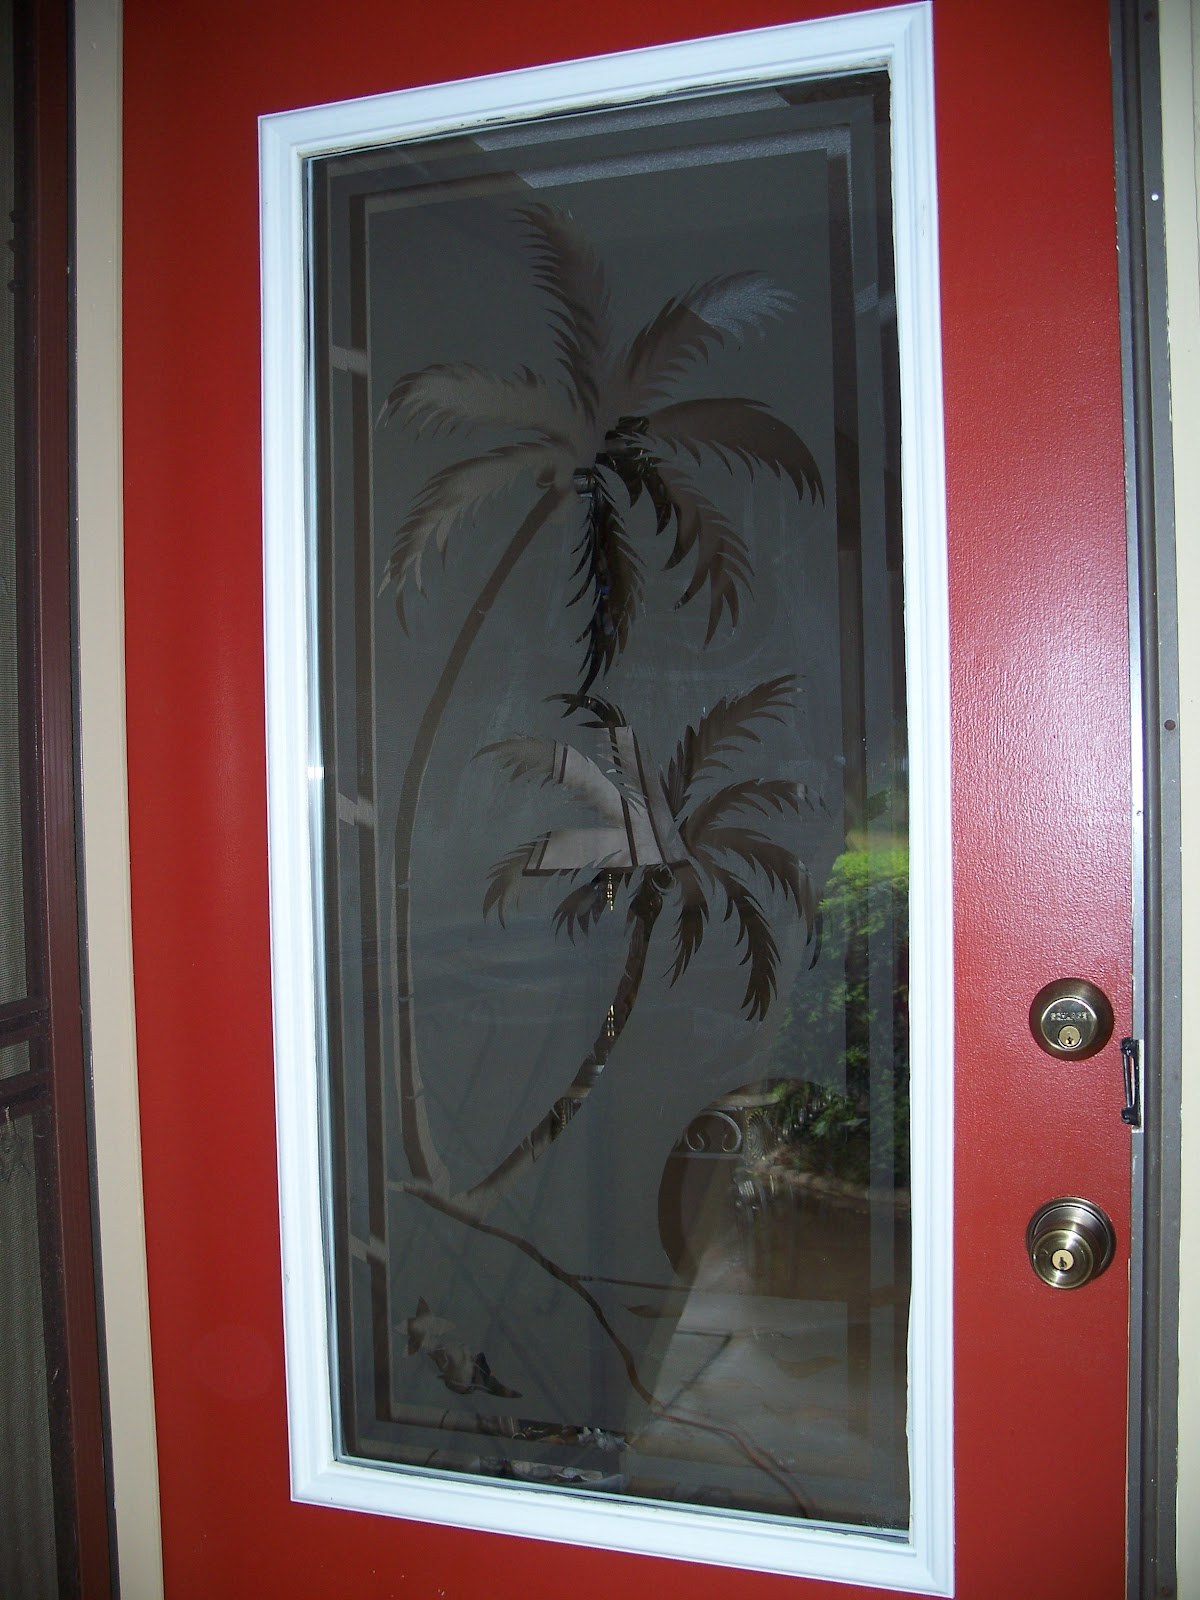 1600 #882723 Artistic Pursuits: Glass Etching Front Door wallpaper Etched Glass Front Doors 39351200